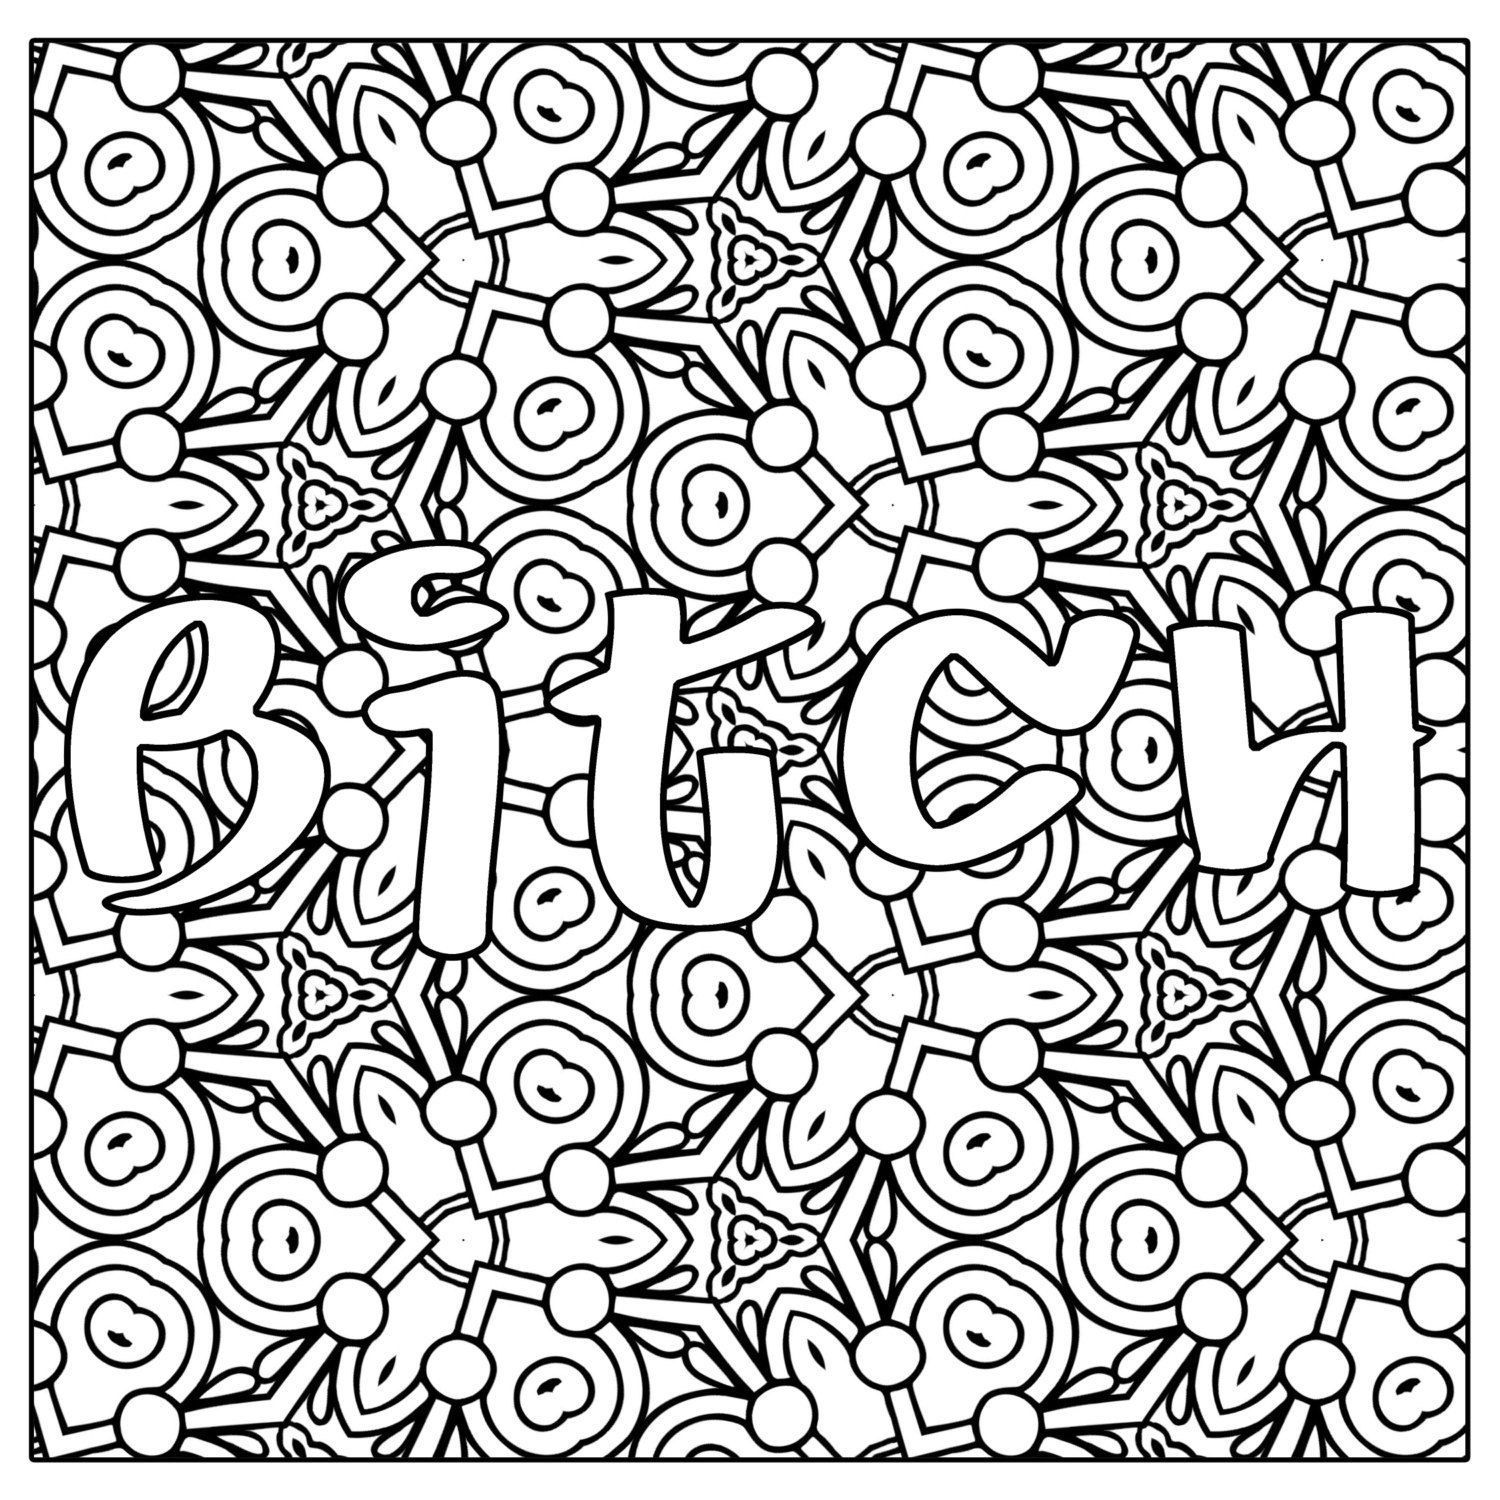 Btch Swear Word Coloring Page JPG Instant by ...